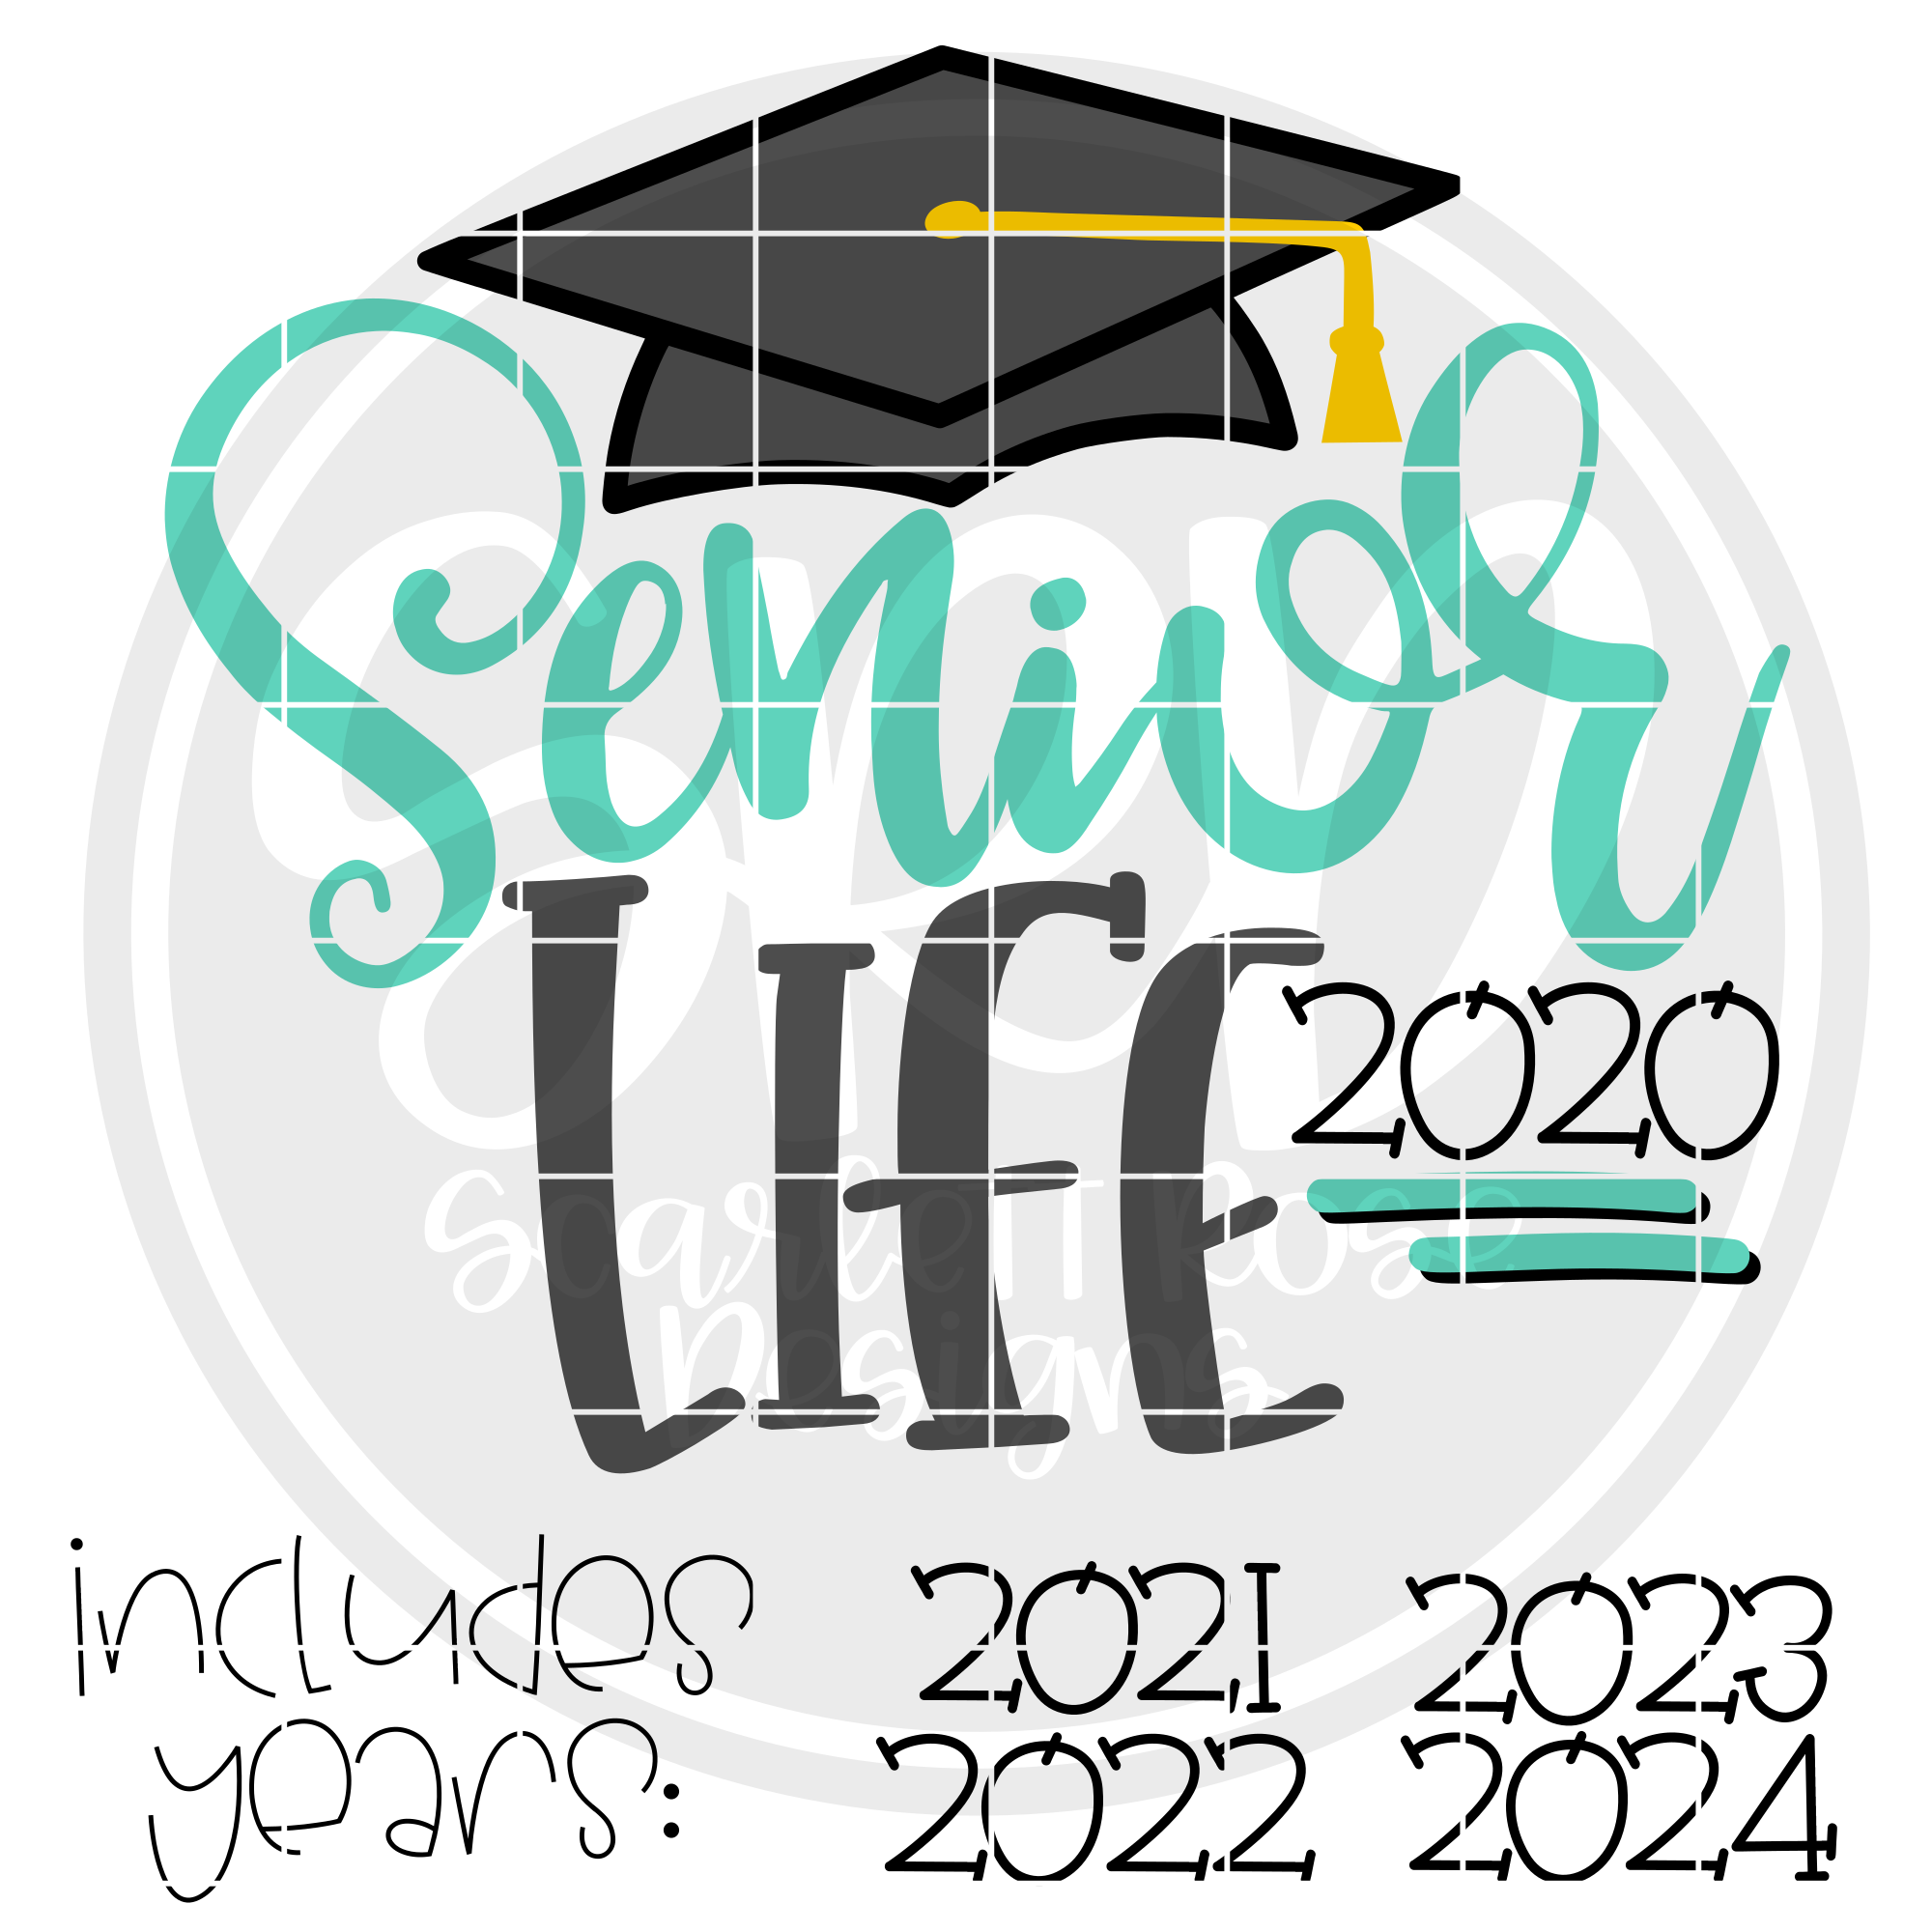 School Svg Senior Life 2020 Svg Graduation Cap Svg Cut File Scarlett Rose Designs